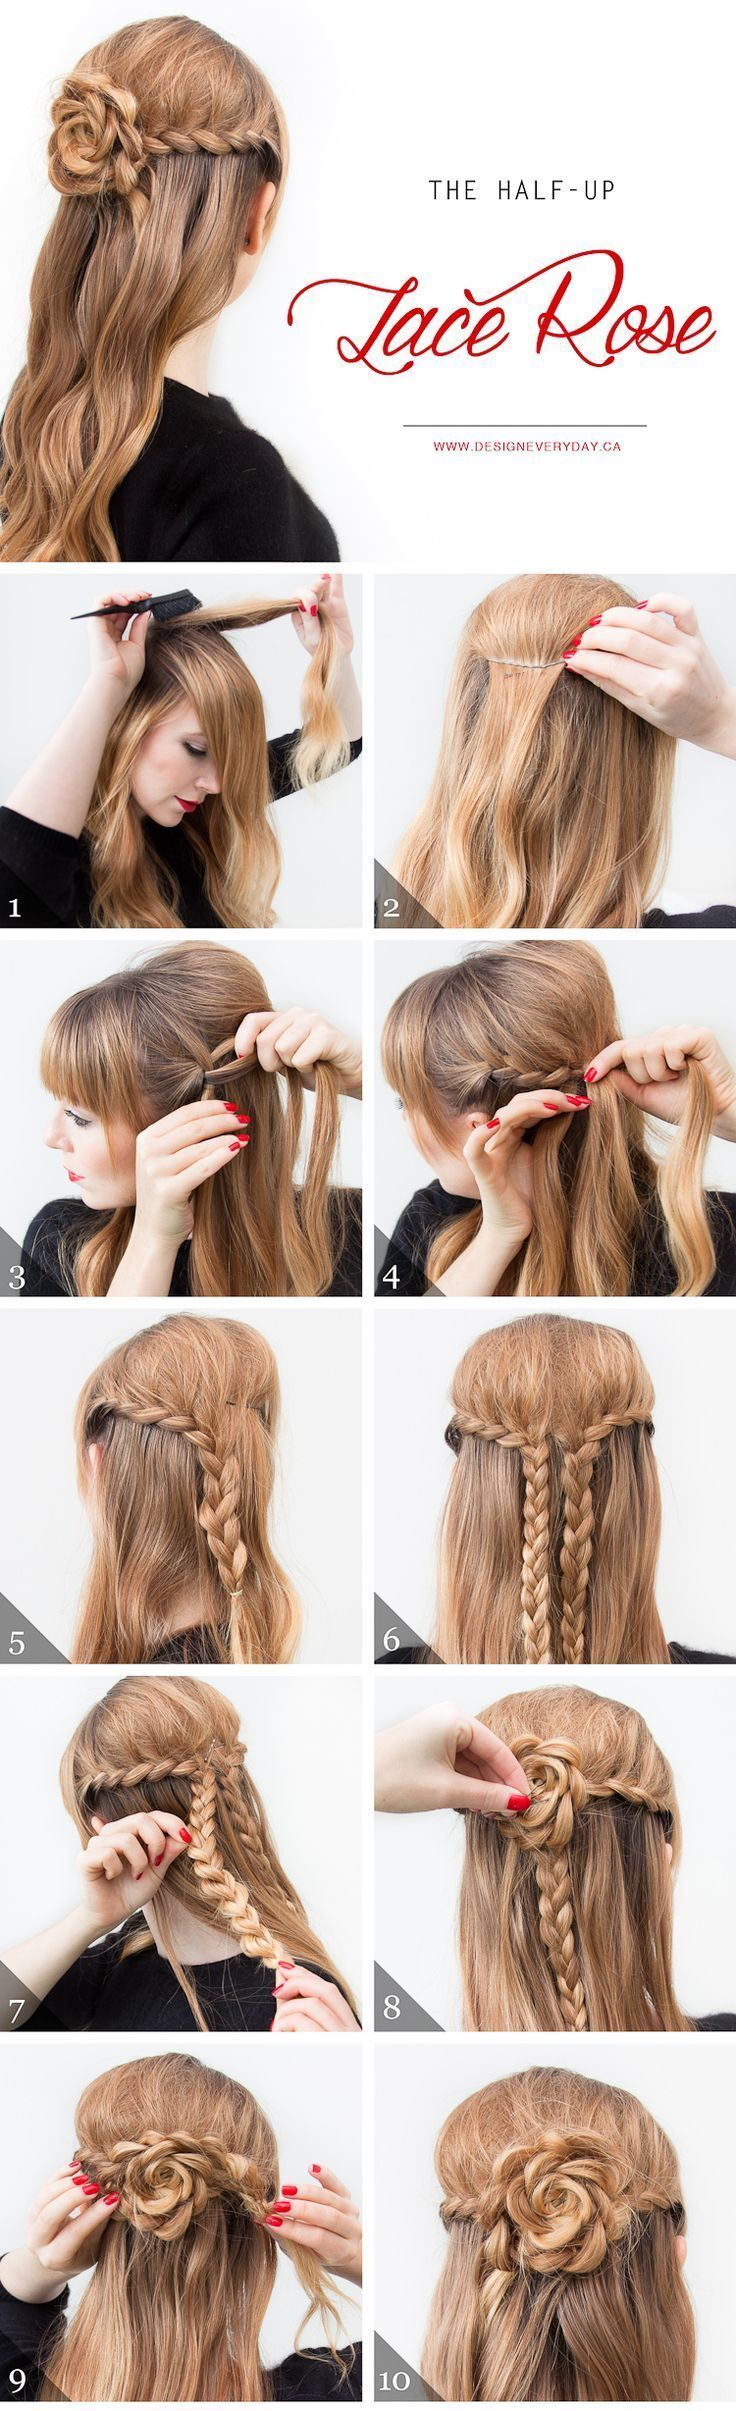 best 25+ rose hairstyle ideas on pinterest | rose braid, how to